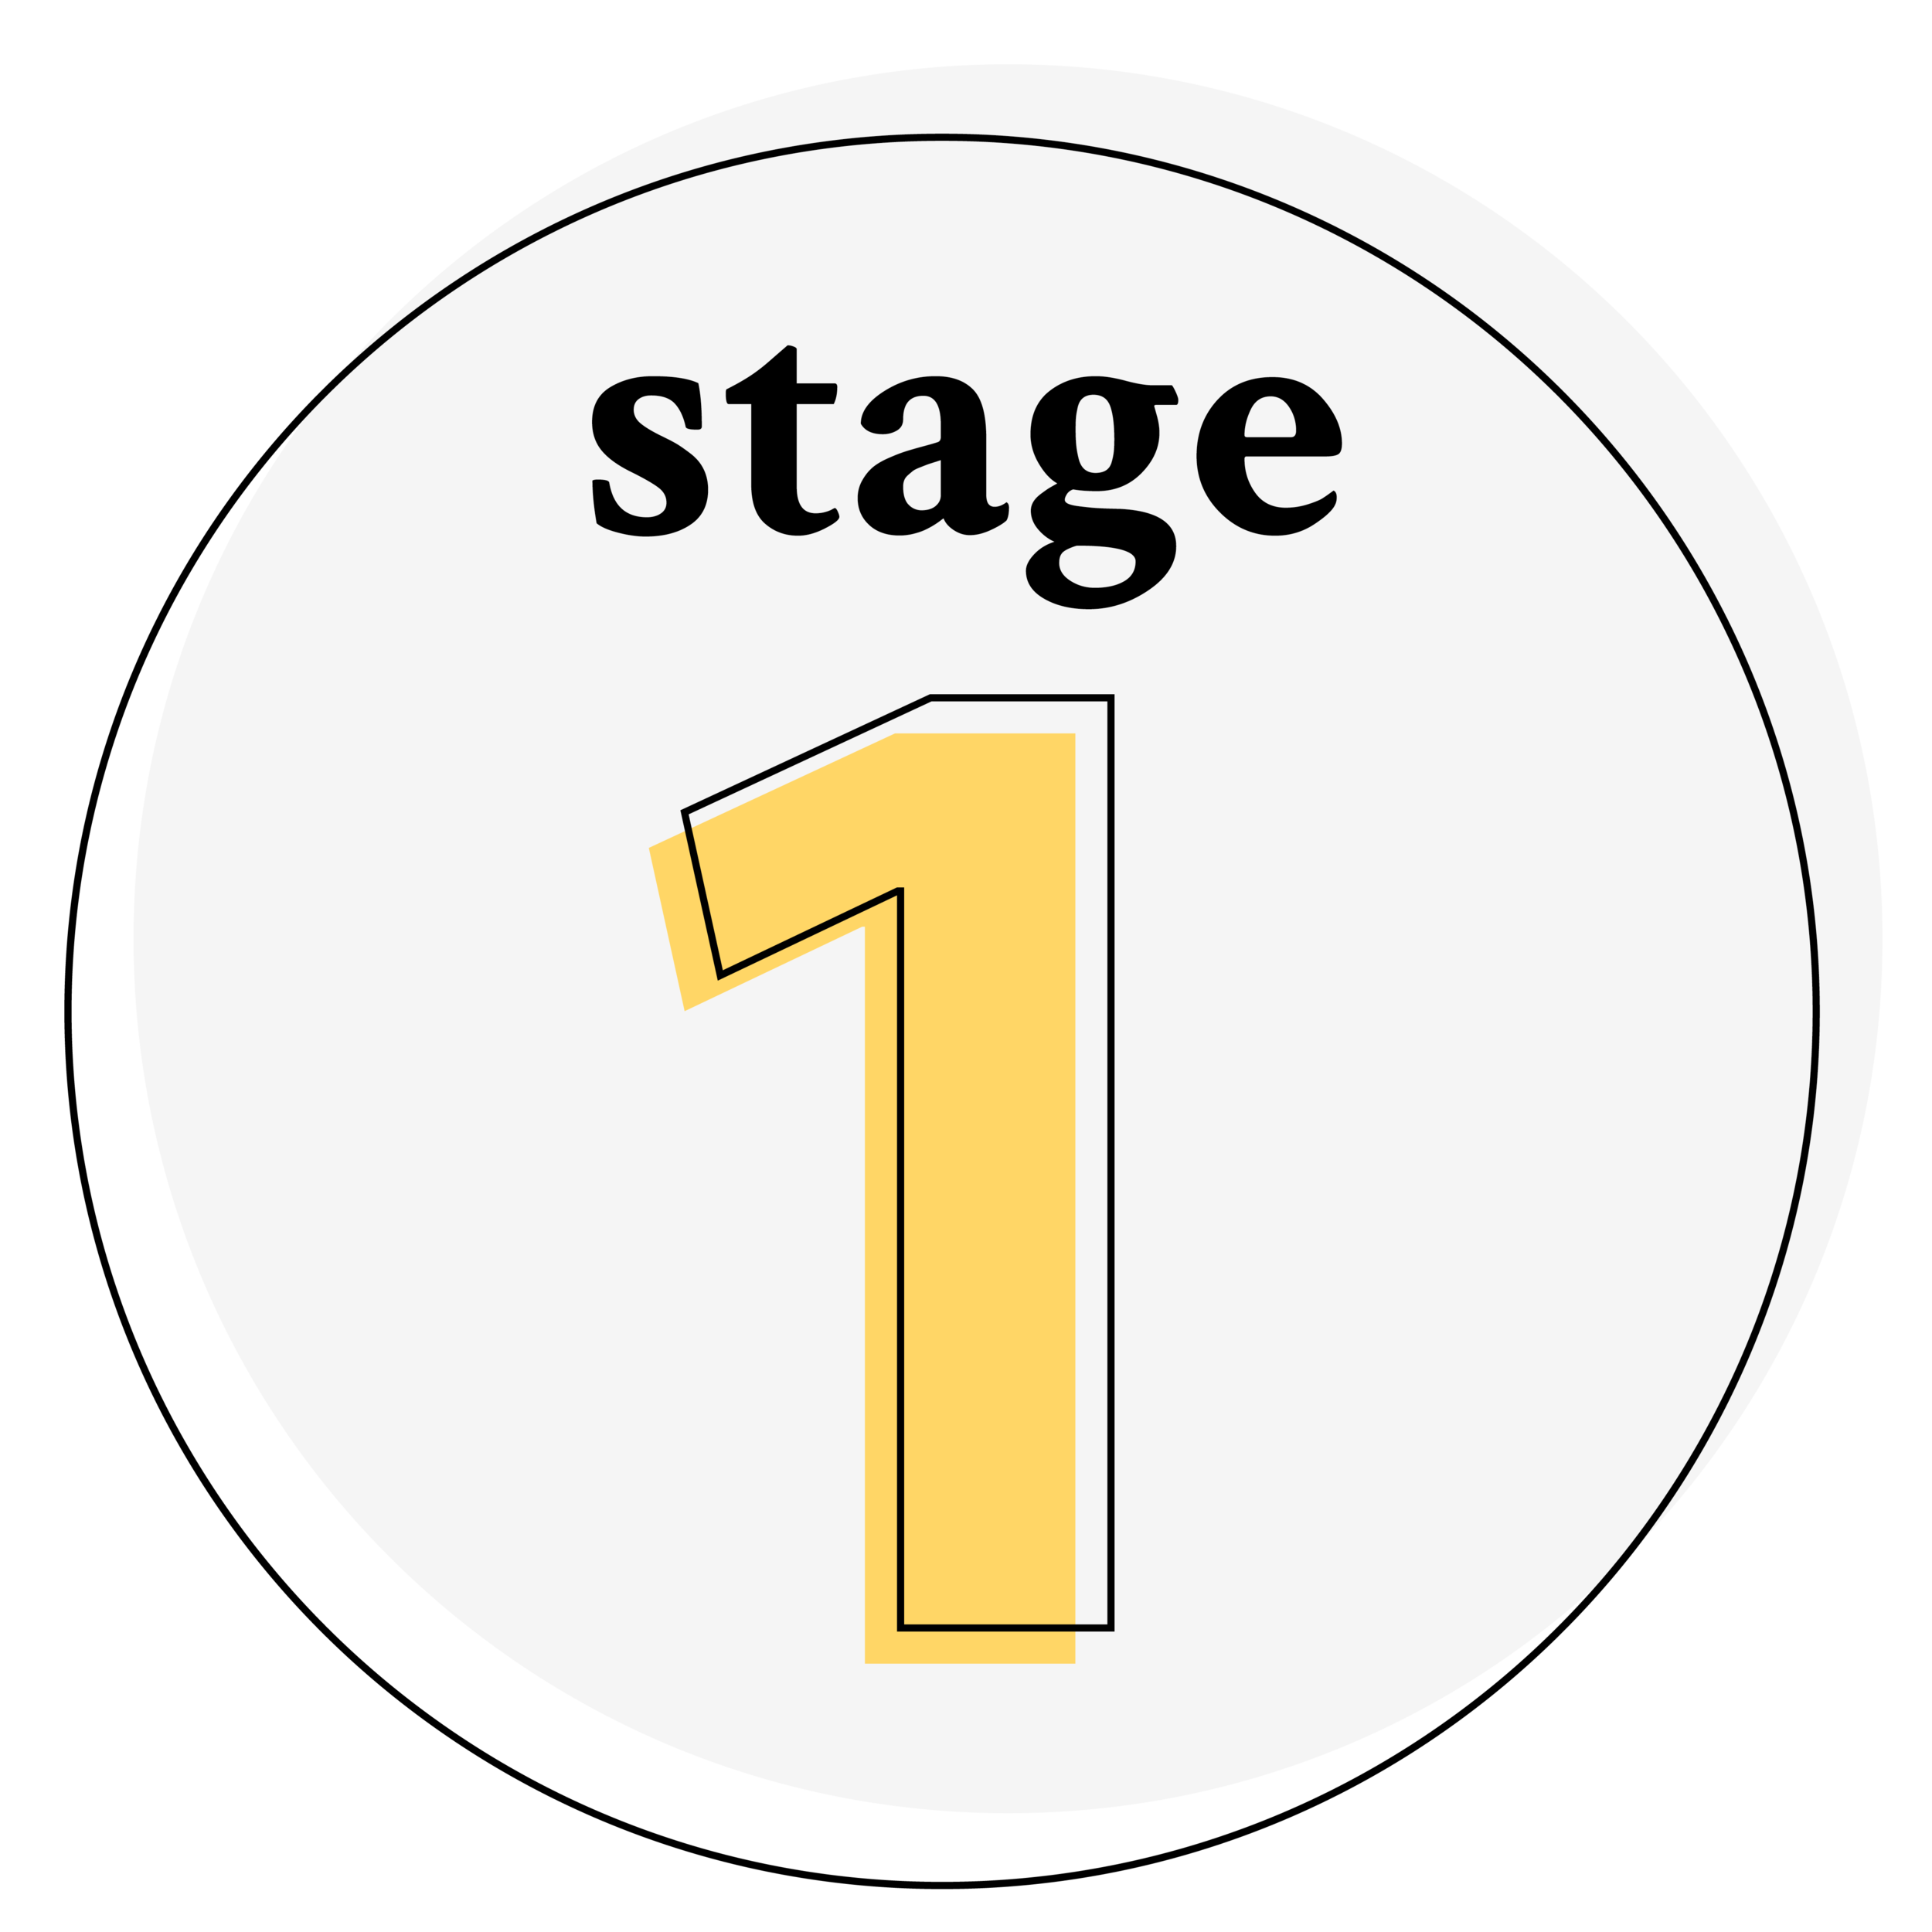 icon-stage-1.png